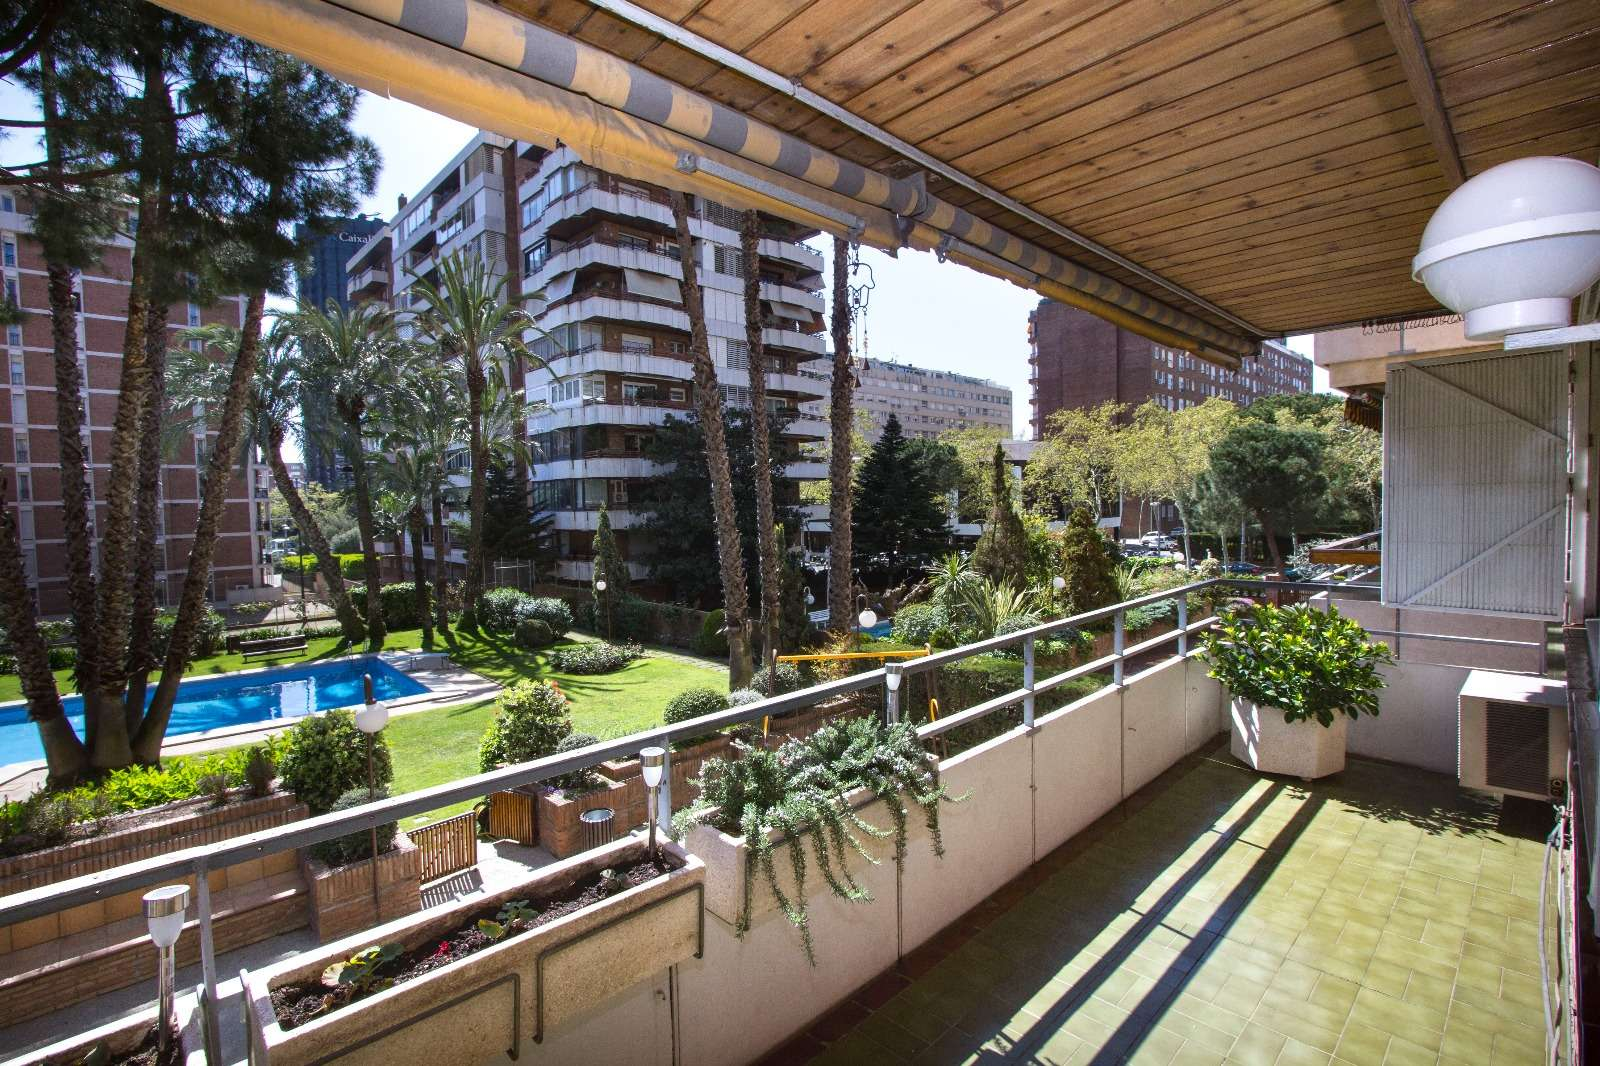 Apartment with a pool in Pedrables